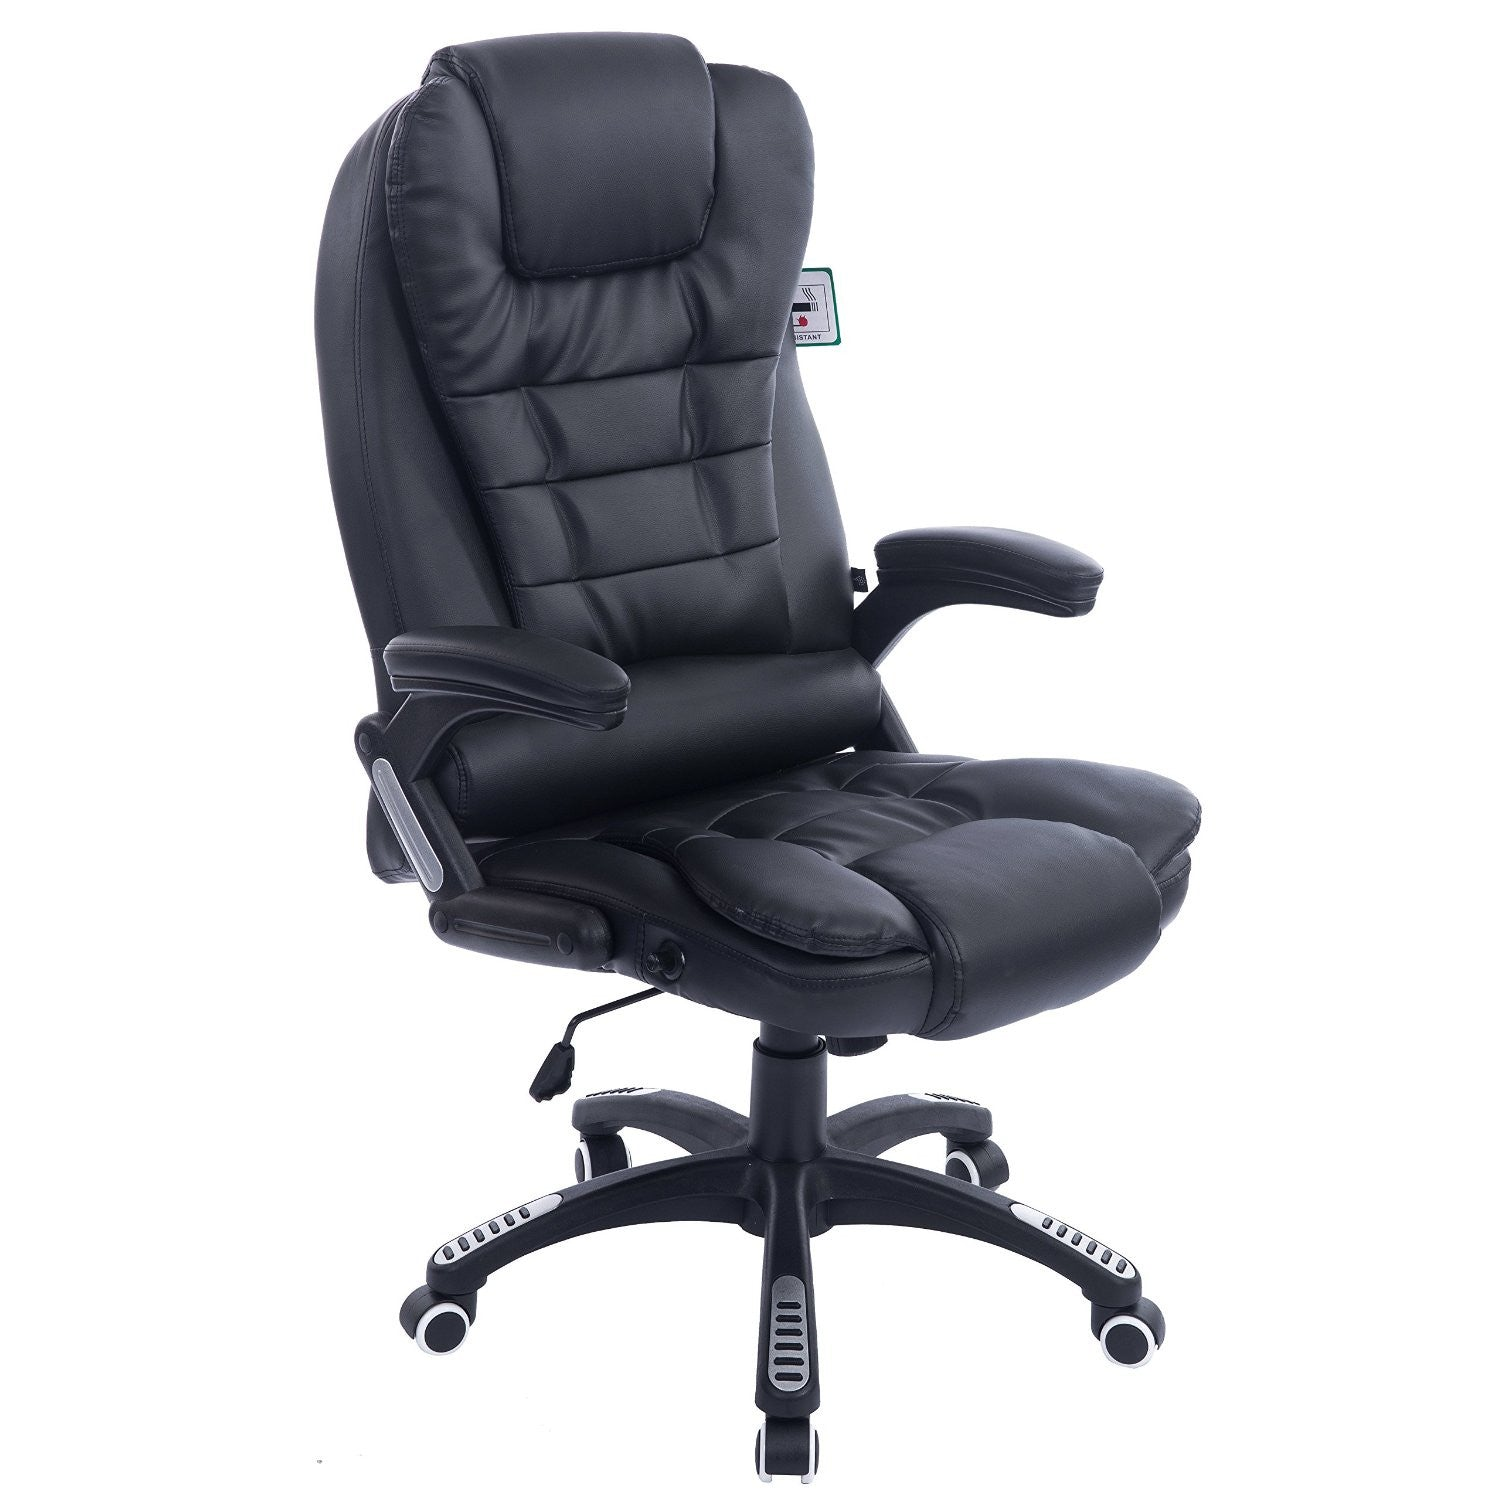 home gaming office recliner desk sports uk kitchen leather chair computer reclining blue racing dp gtforce amazon co blaze